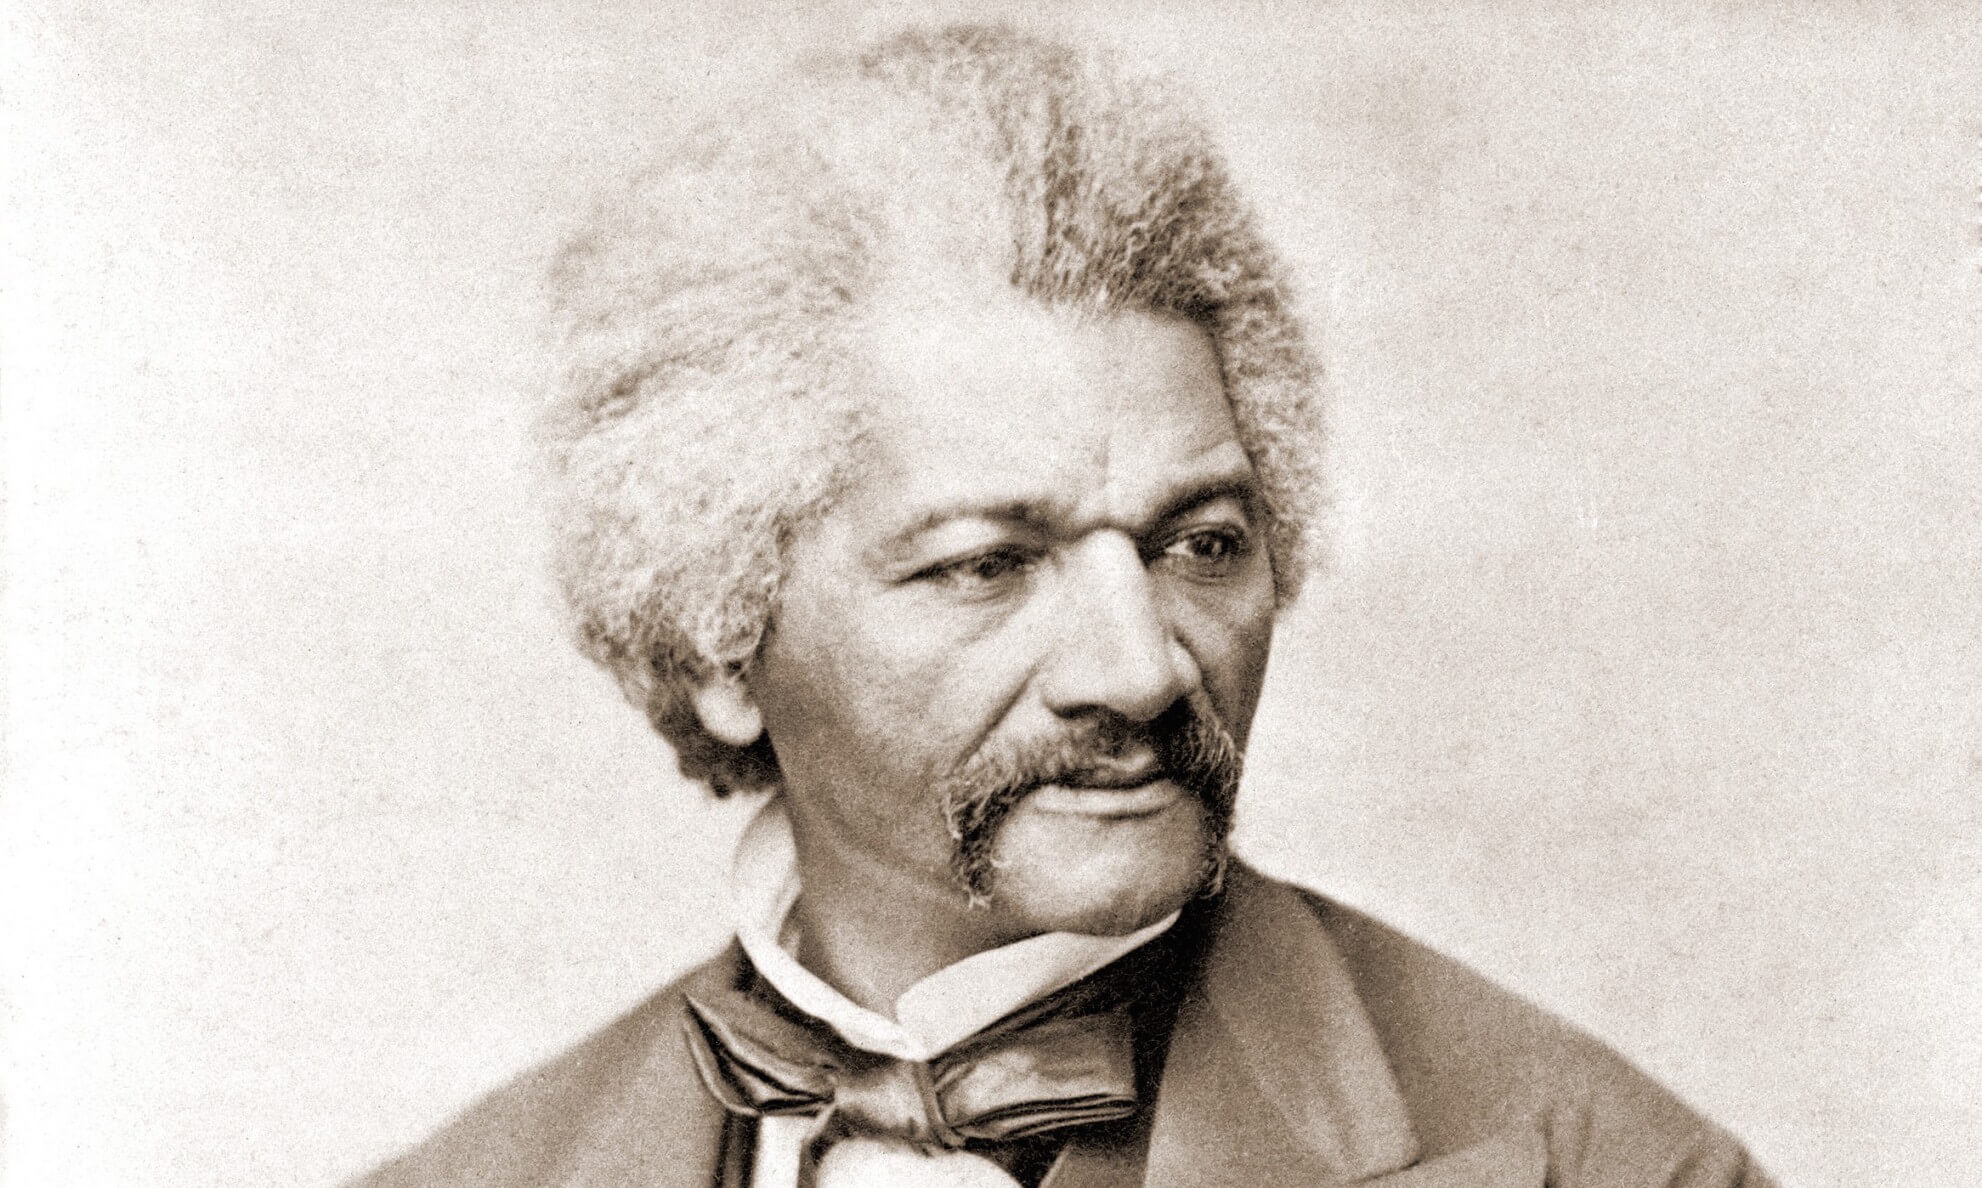 Frederick Douglass (1818-1895), former slave and abolitionist who broke stereotypes about African Americans in the decades prior to the U.S. Civil War. 1855 portrait